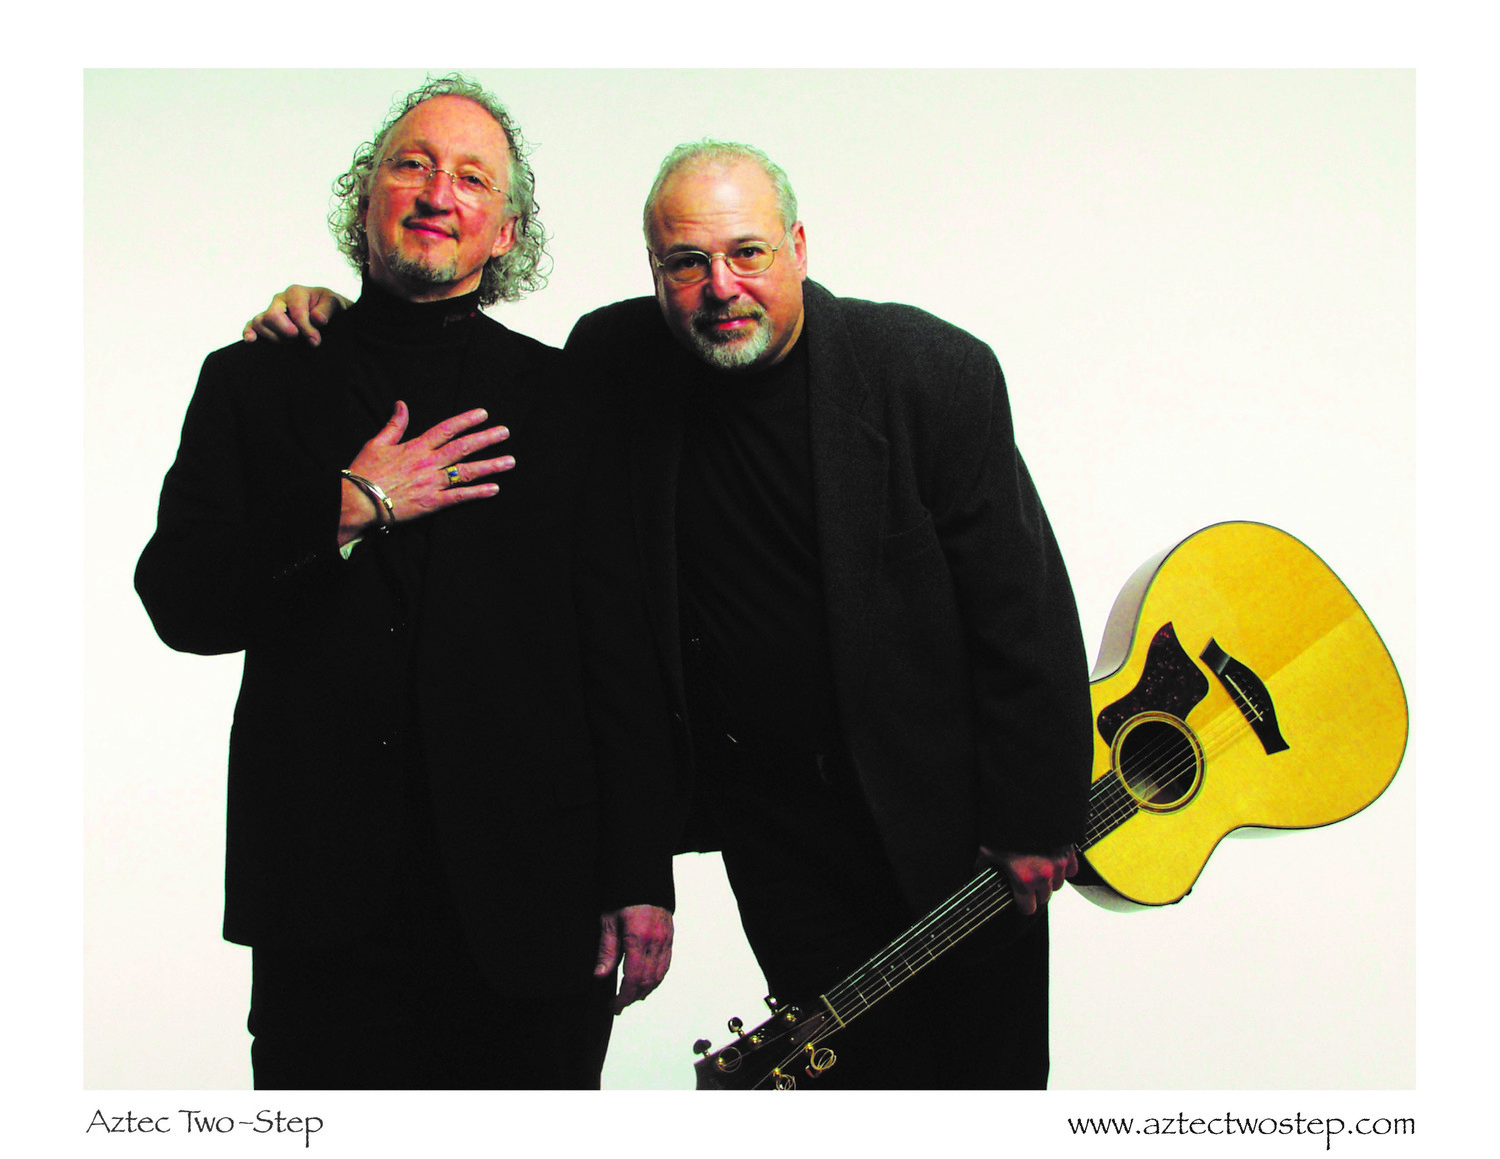 The enduring duo interprets the musical legacy of their iconic predecessors Simon & Garfunkel.